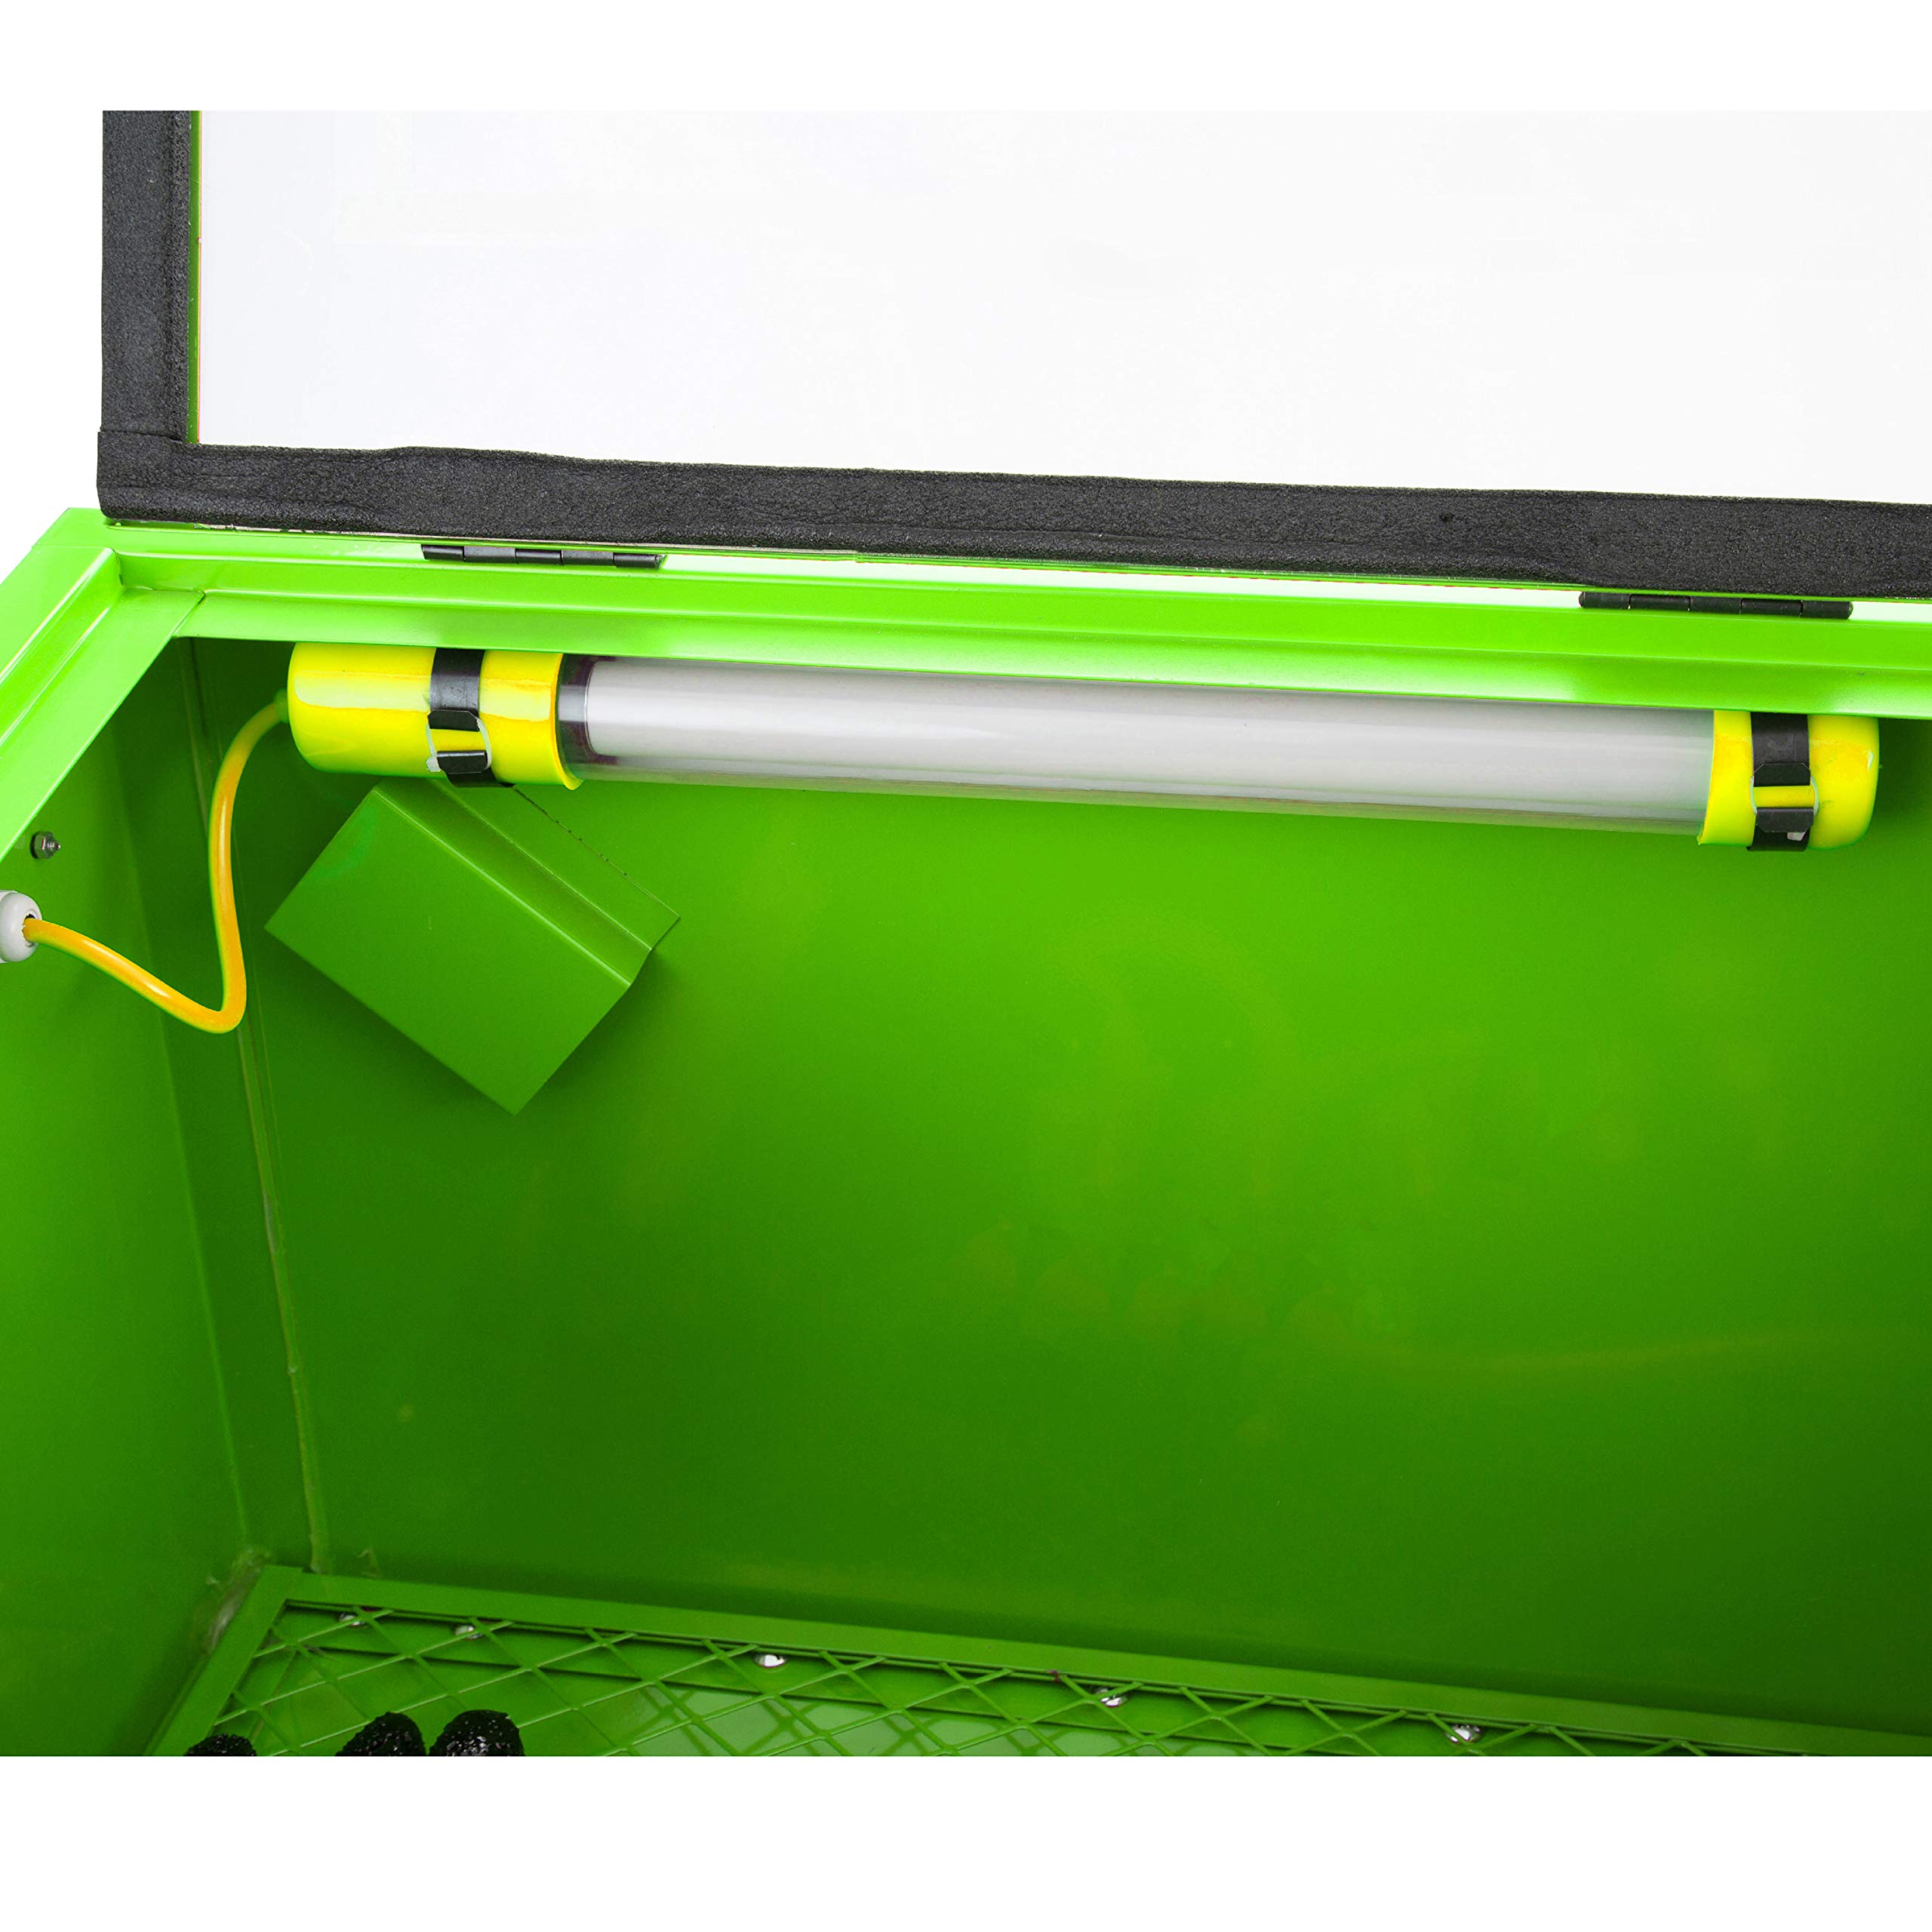 OEMTOOLS 24815 Bench Top Abrasive Blast Cabinet by OEMTOOLS (Image #5)